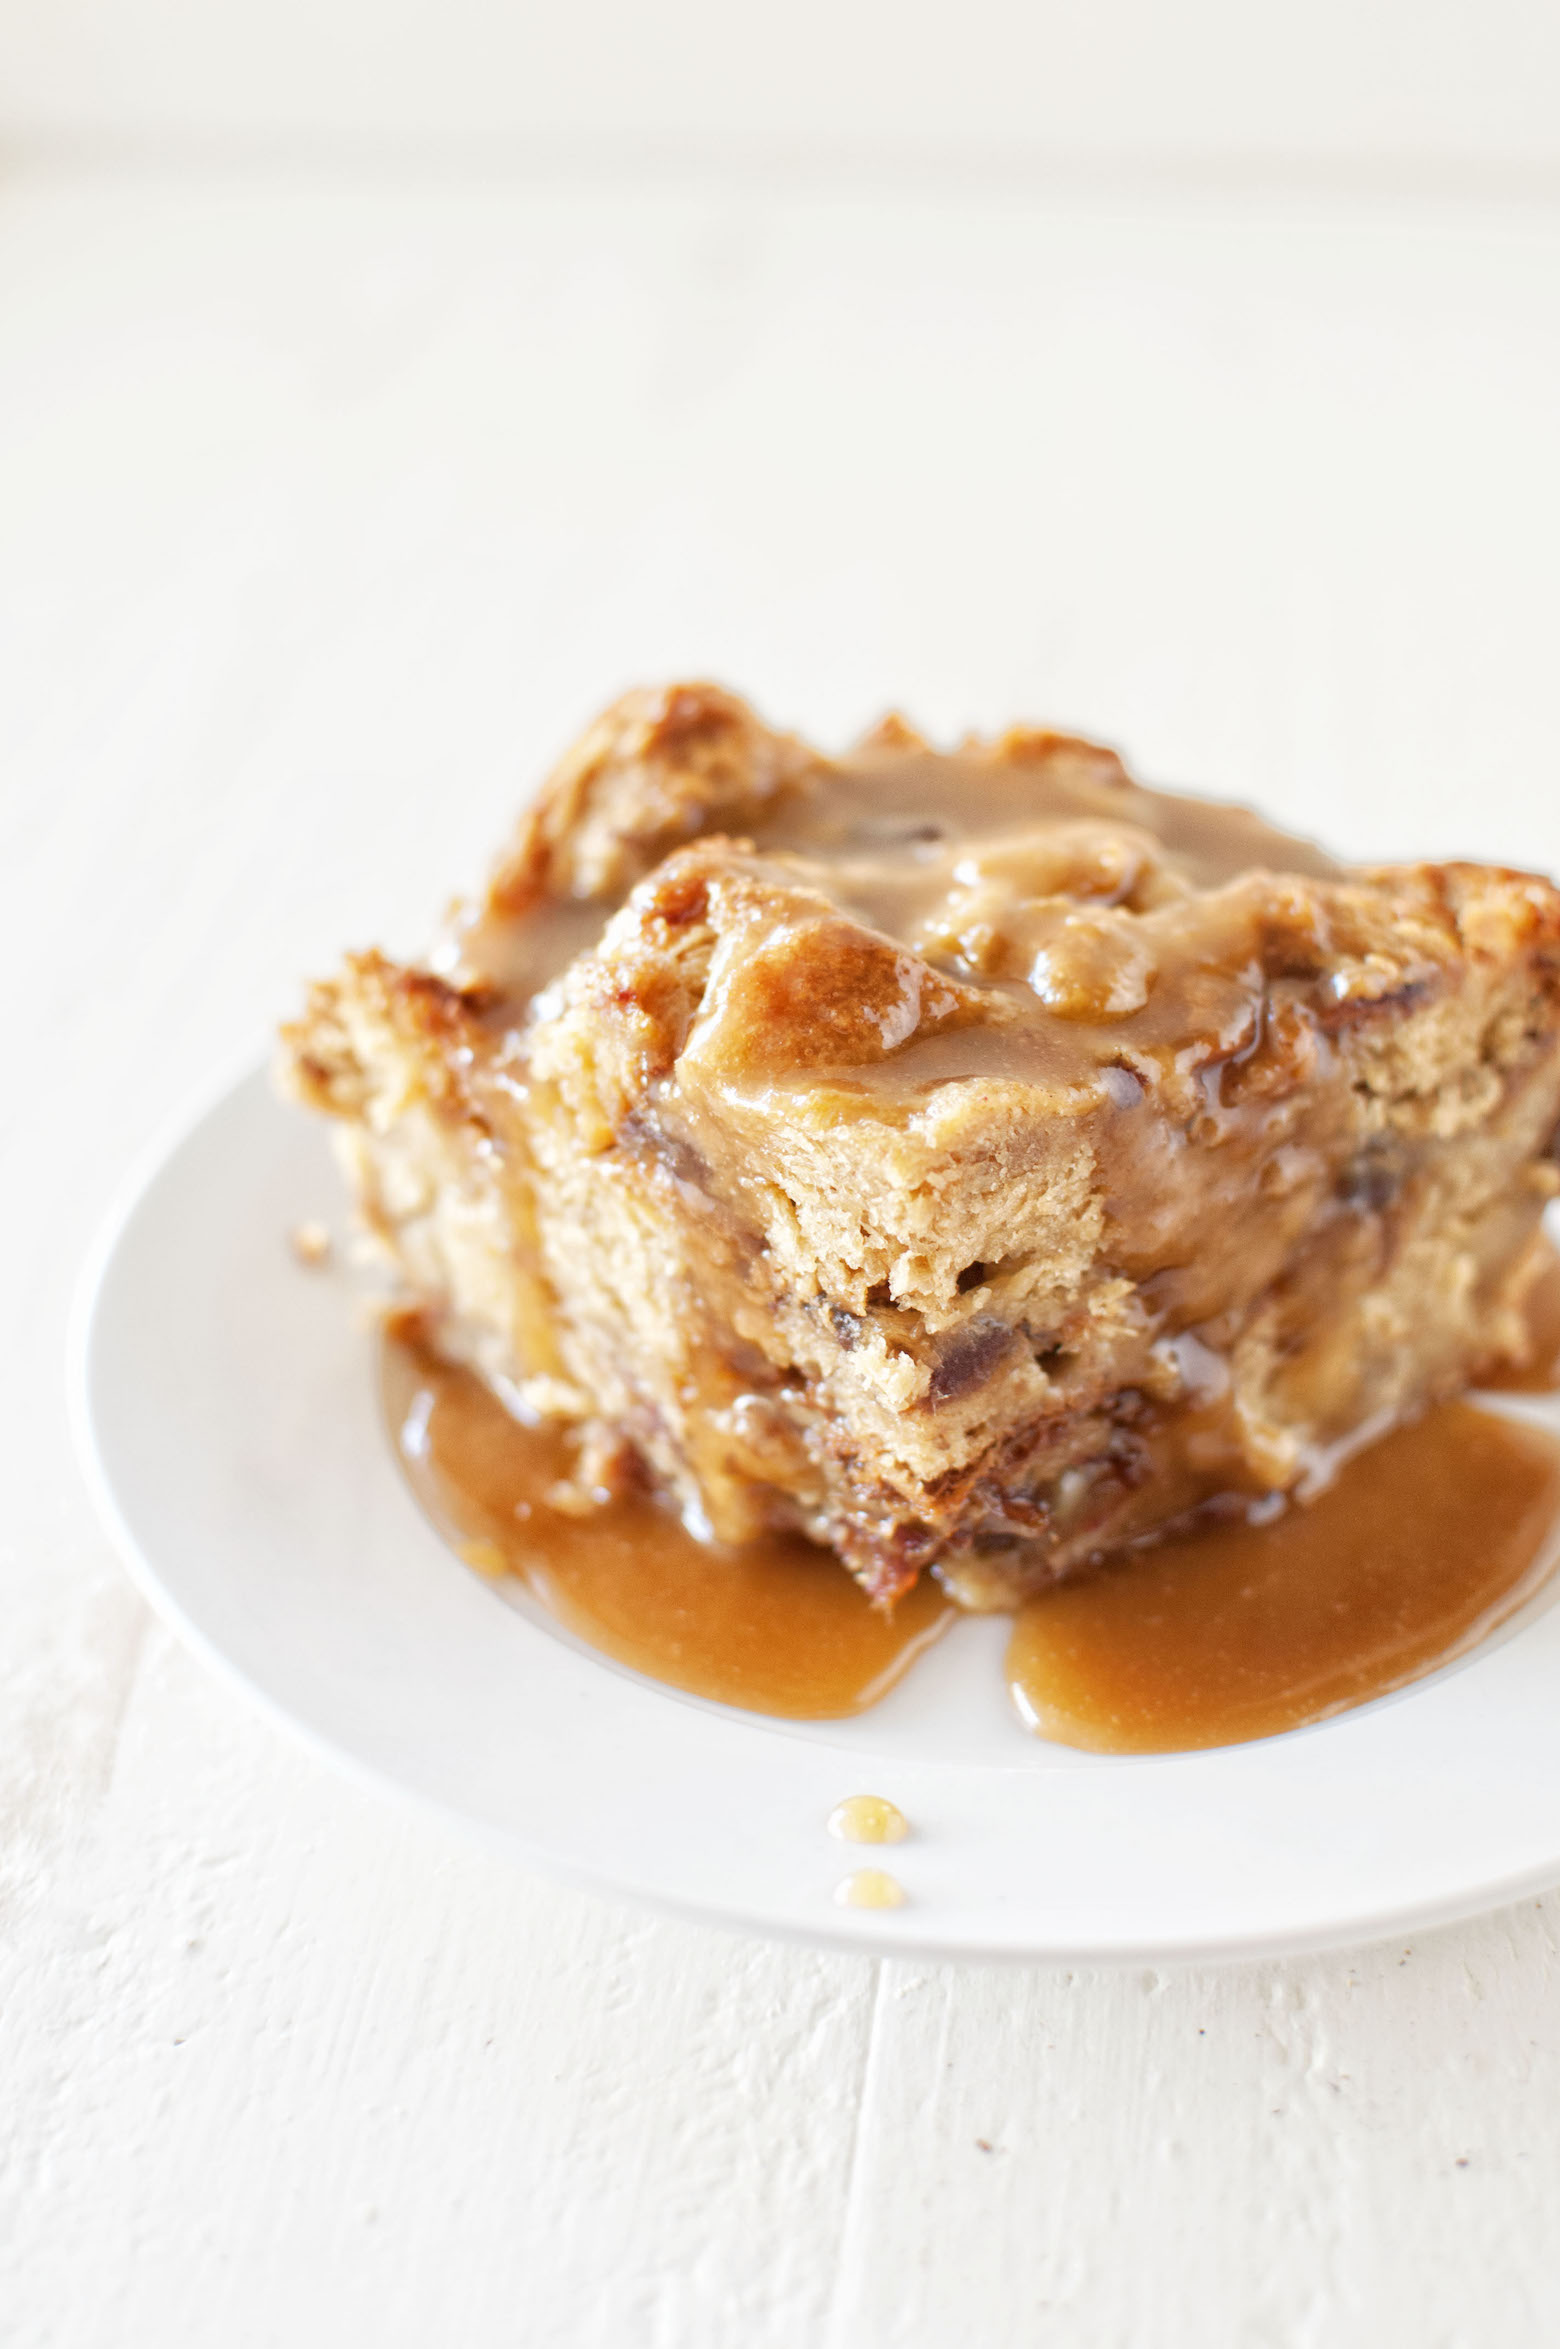 Sticky Toffee Pudding Bread Pudding Delicious Date Brioche Combined With A Brown Sugar Custard And Topped With Toffee Sauce Make Up This Amazing Bread